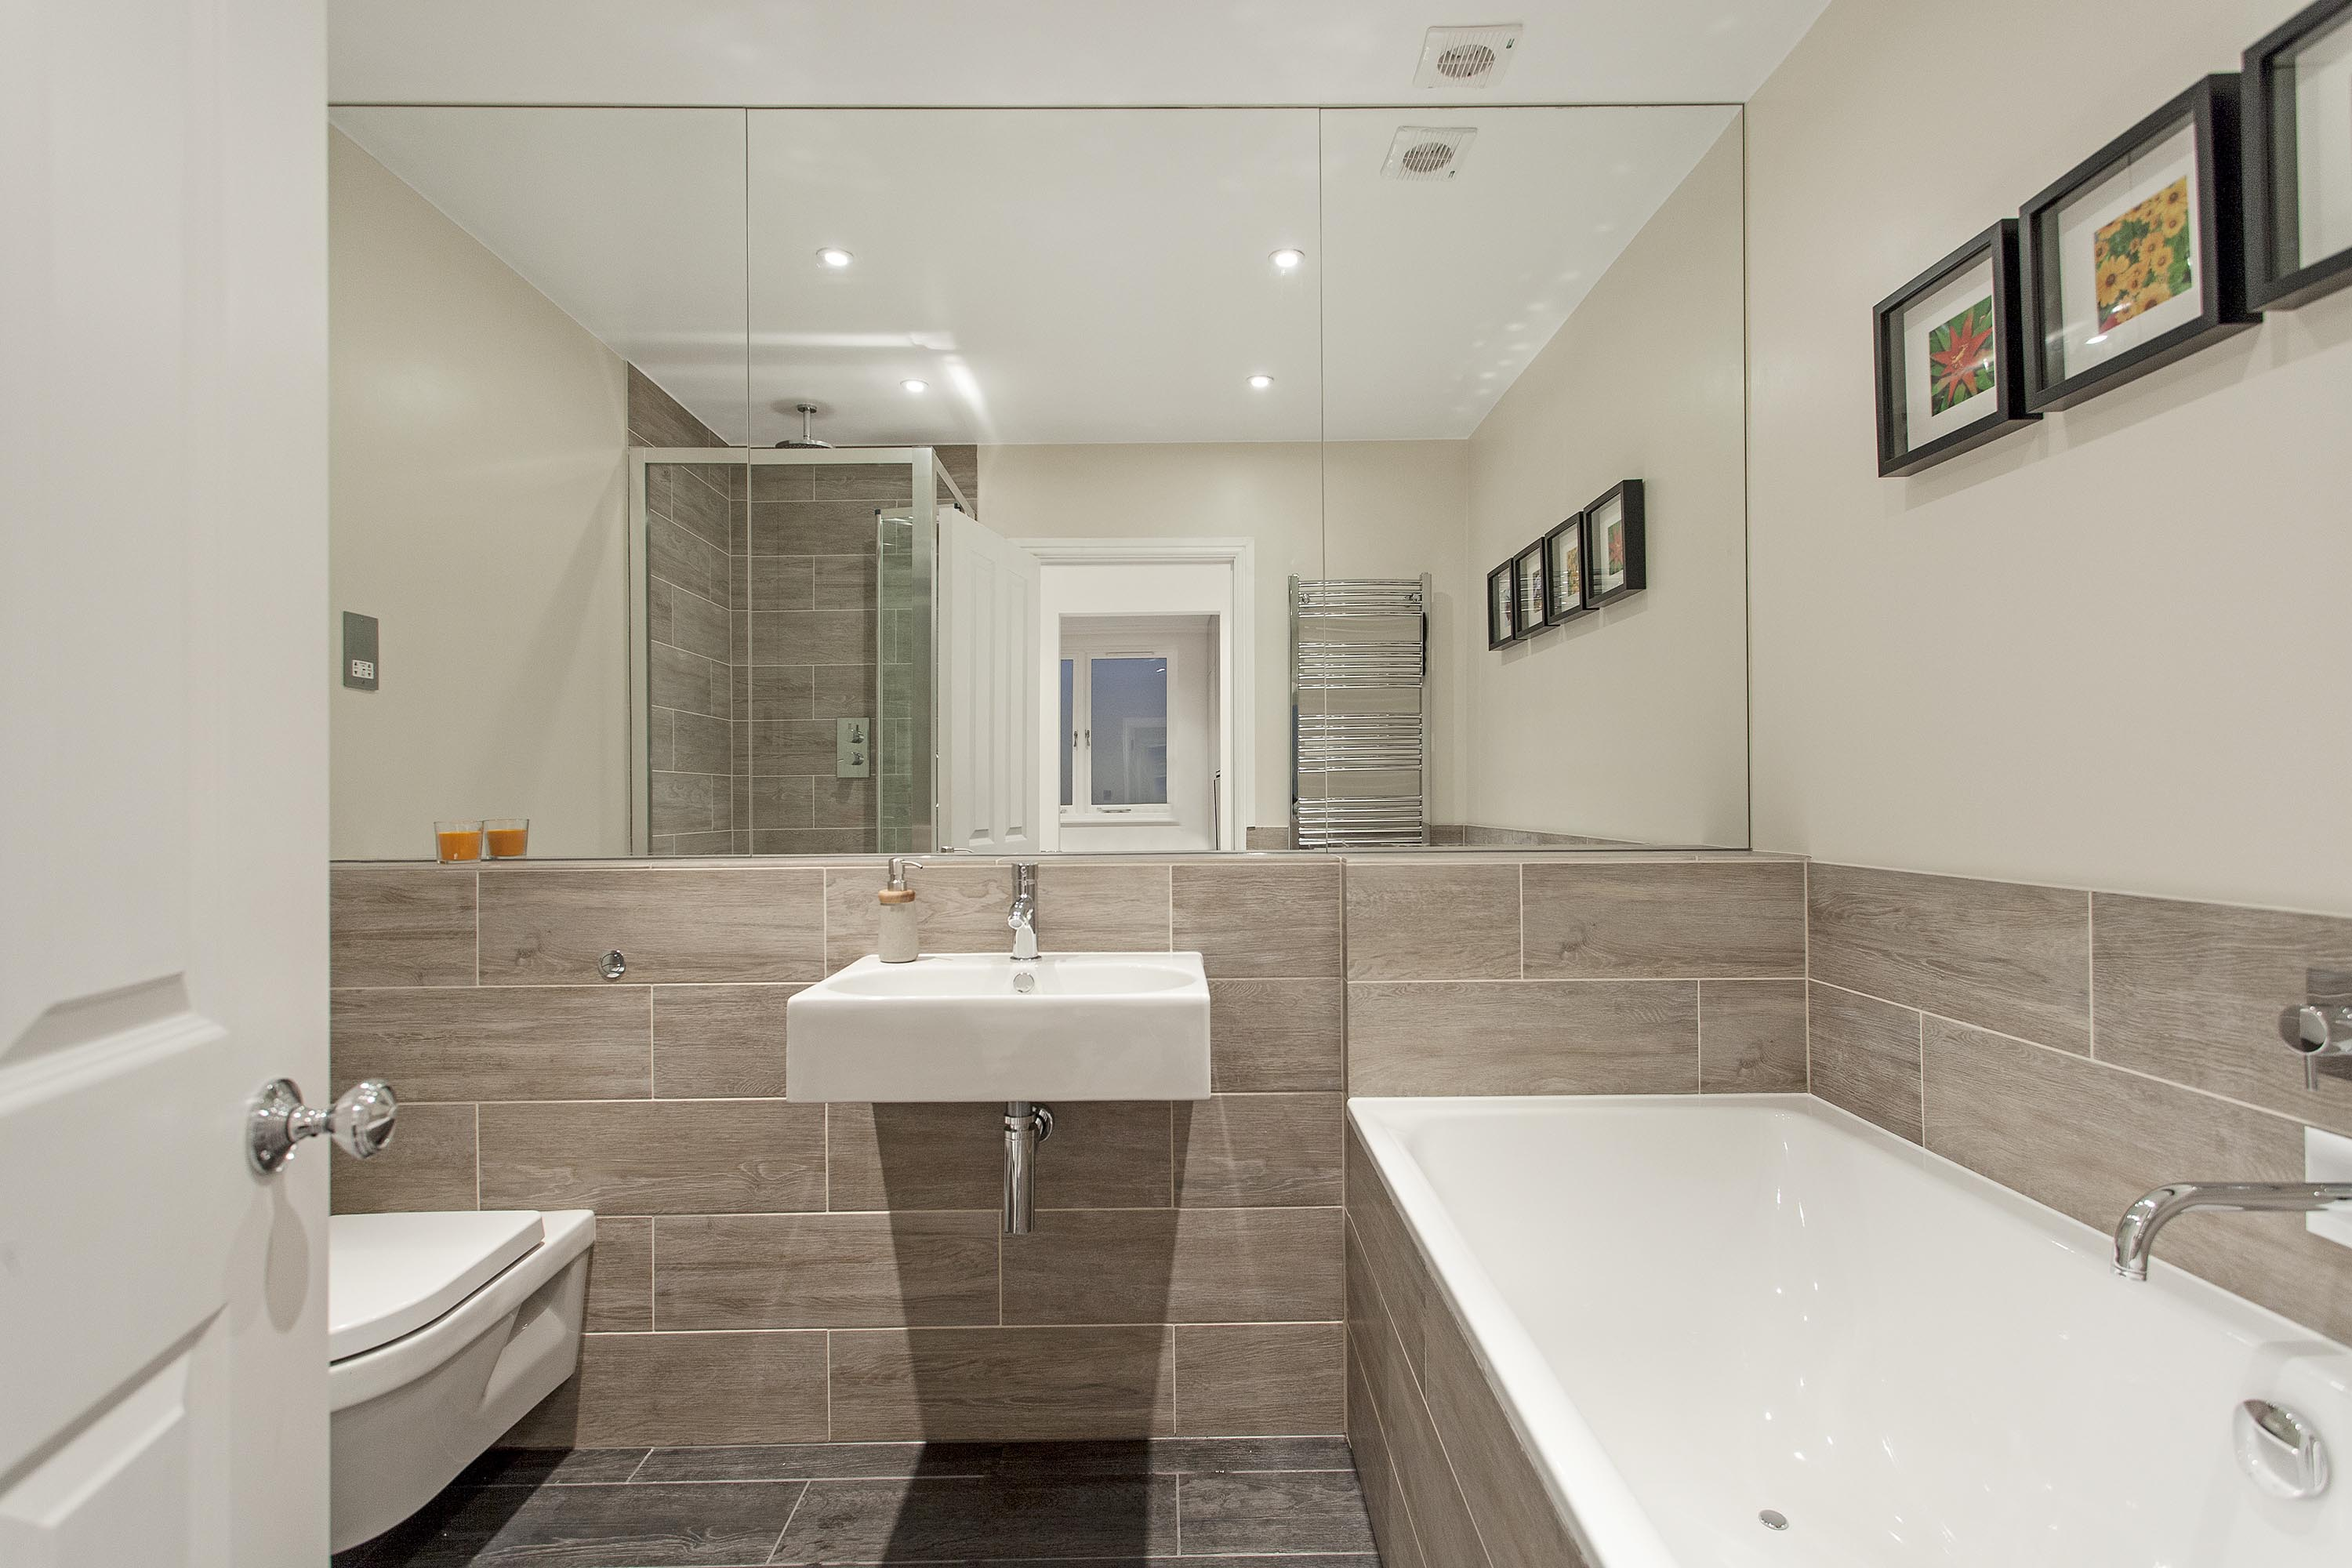 Premier bathrooms ltd 28 images mobility bathroom design premier care in bathing premier Bathroom design perth uk